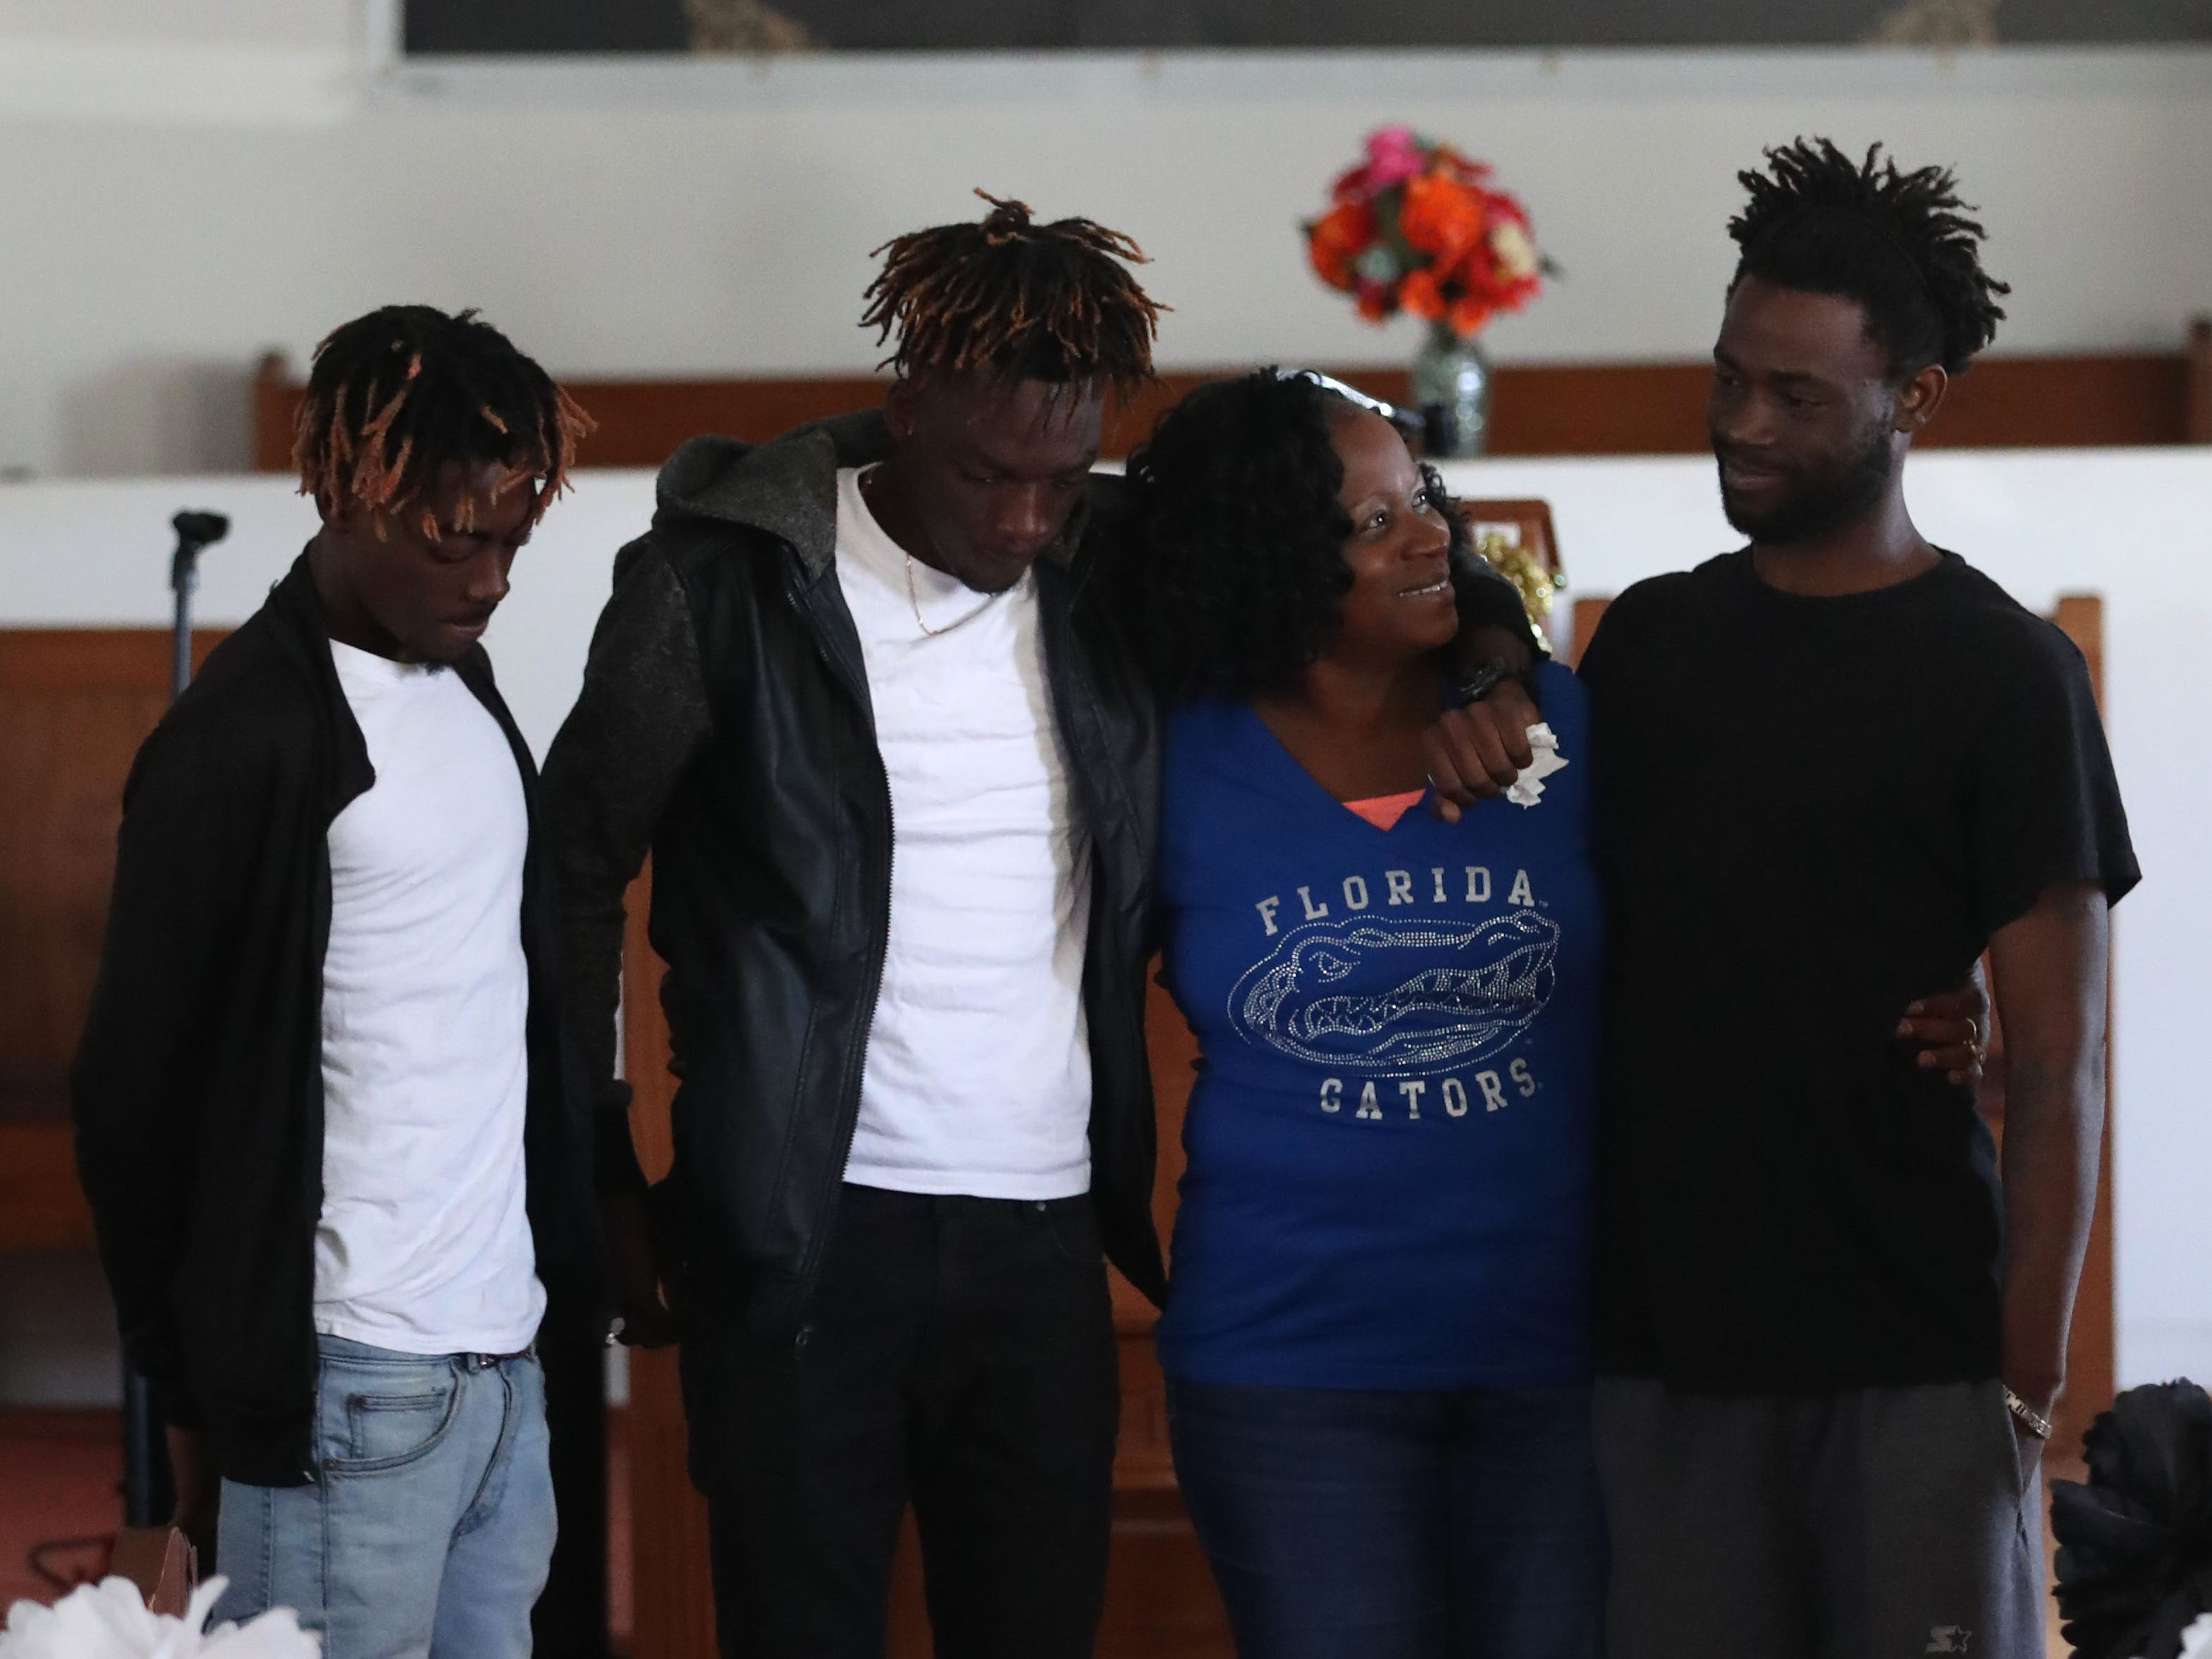 The family of Demashell Bass, a woman who could not receive medical attention and died during the hurricane from left to right, Tyran Grant, son, 21, Tyrone Grant, son, 23, Isabella Dubose, aunt, 54, and Lawrence Williams, brother, 33, at the Dream, Vision, and Destiny (DVD) Ministry in Gretna, Fla., on Sunday Oct. 14, 2018, after Hurricane Michael hits the Florida panhandle.